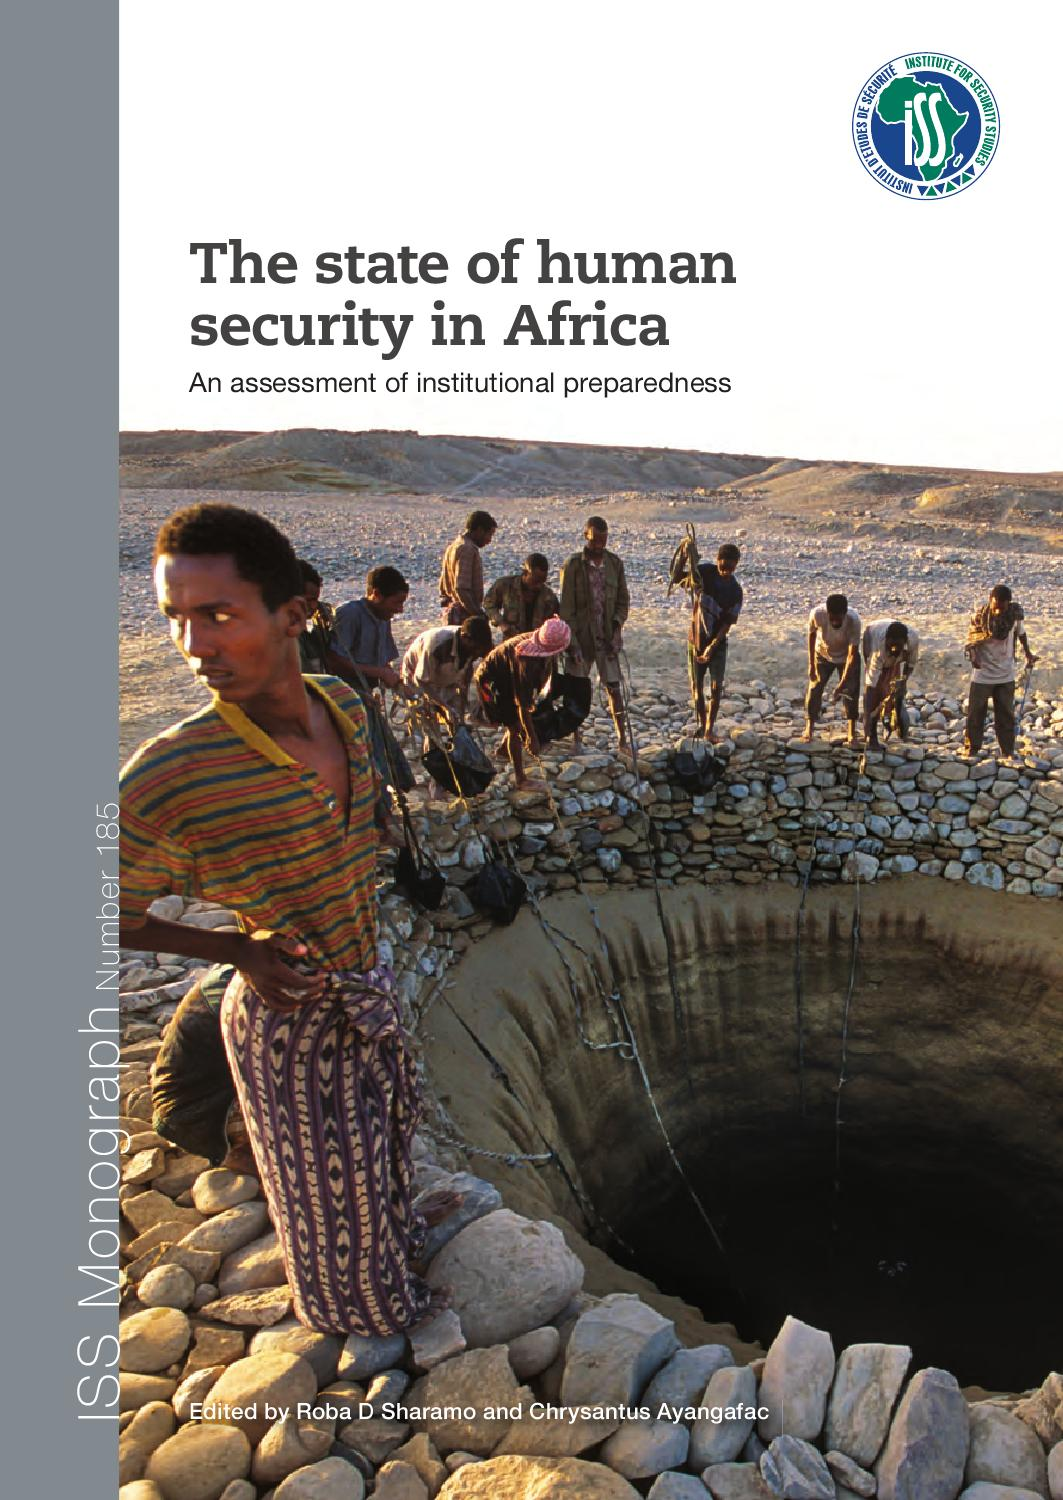 The state of human security in Africa: An assessment of